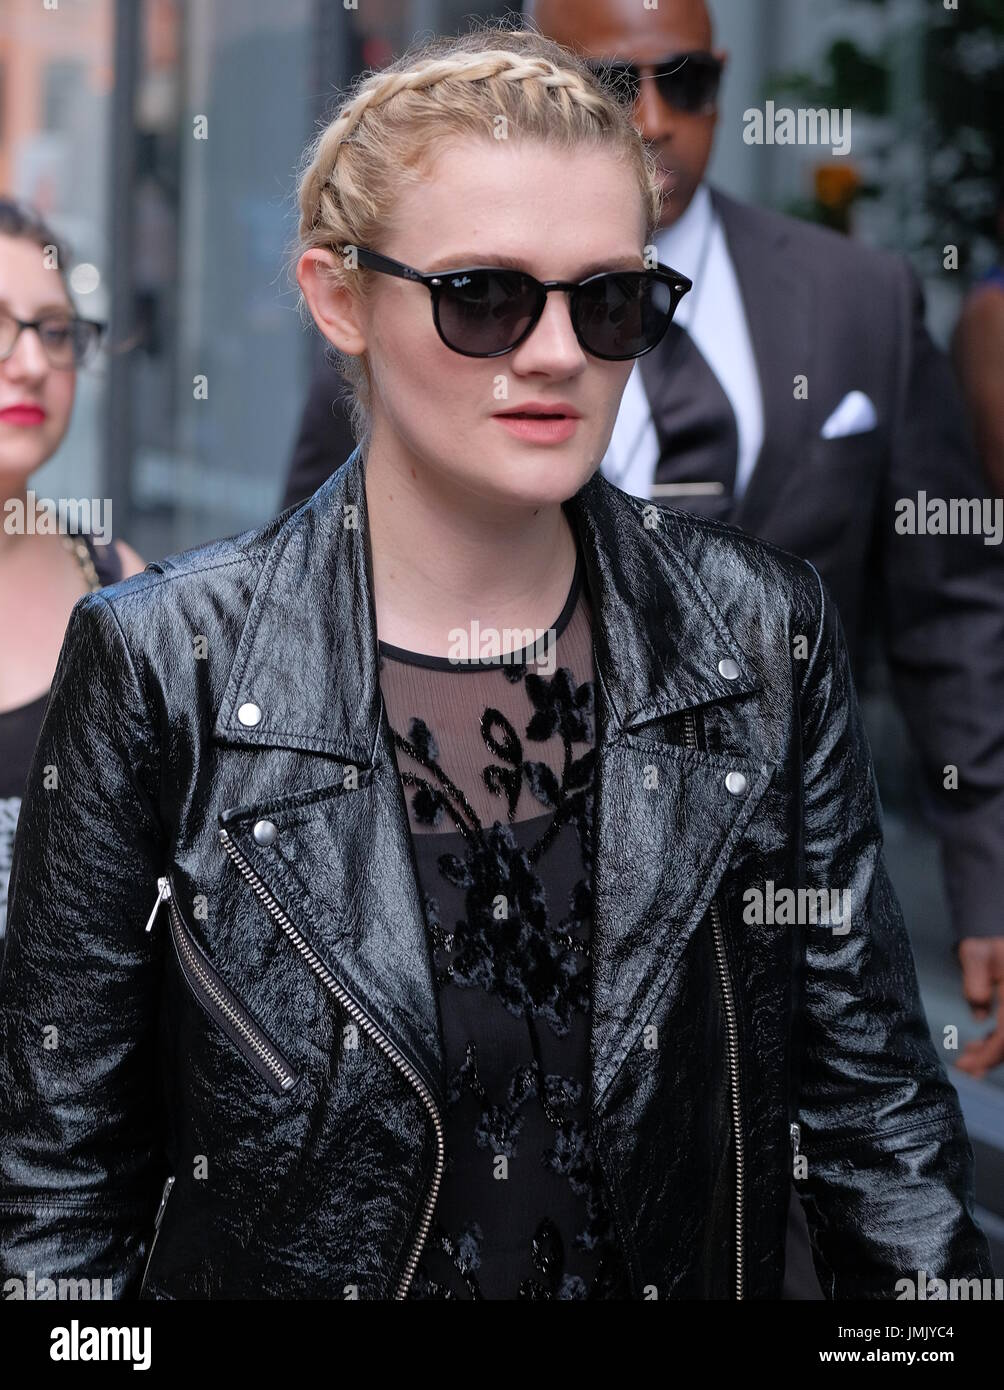 Gayle Rankin nudes (51 foto and video), Tits, Hot, Boobs, braless 2018